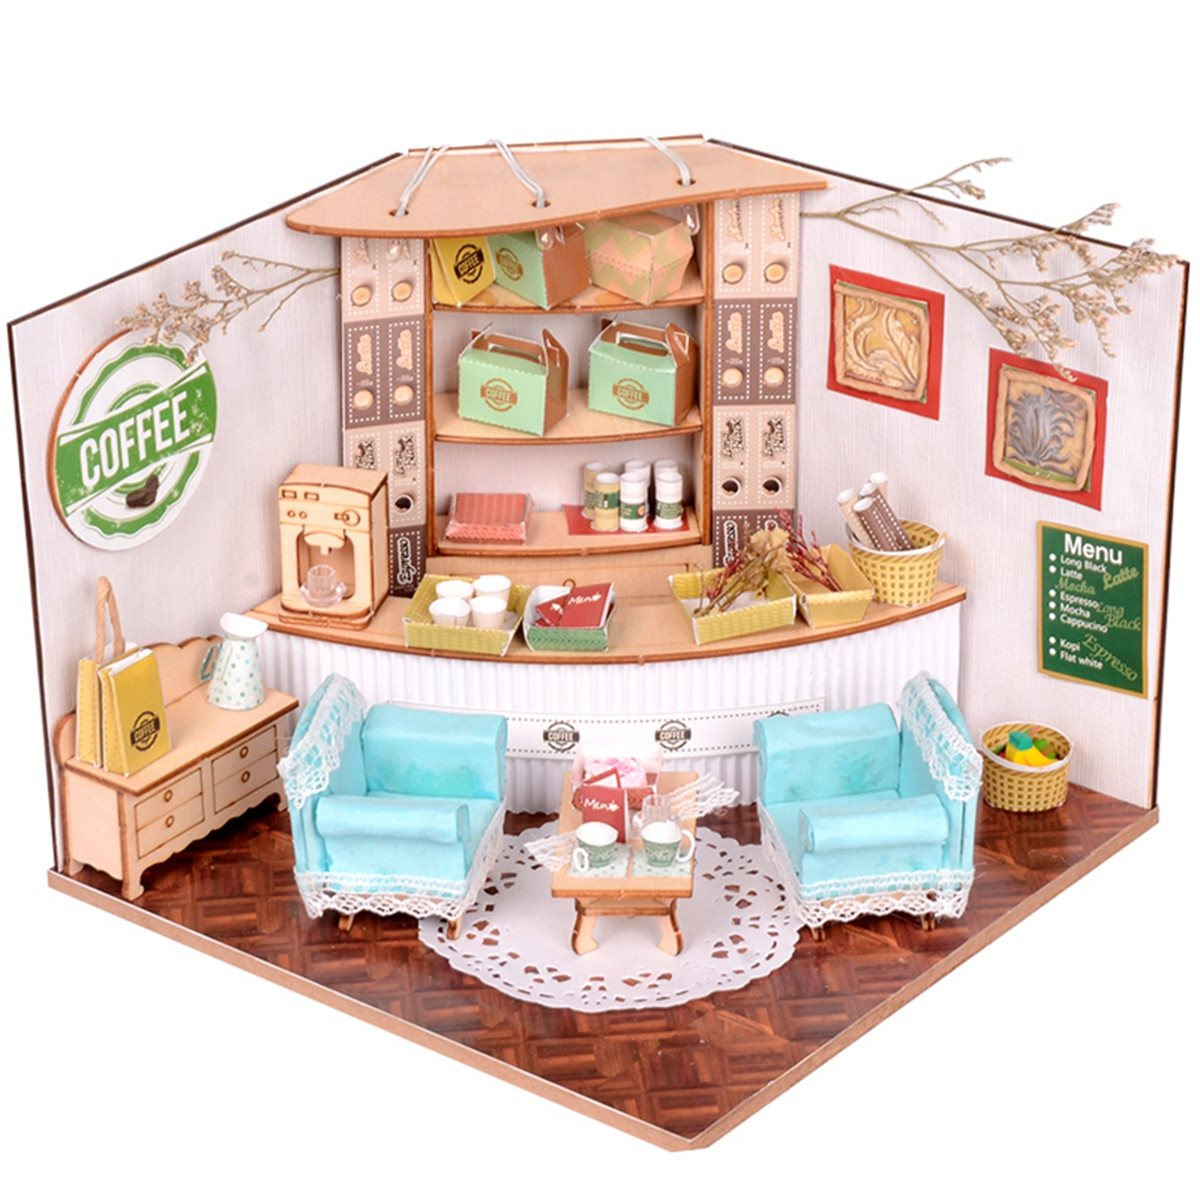 New sweet home colombian coffee house room diy dollhouse for Dollhouse mural